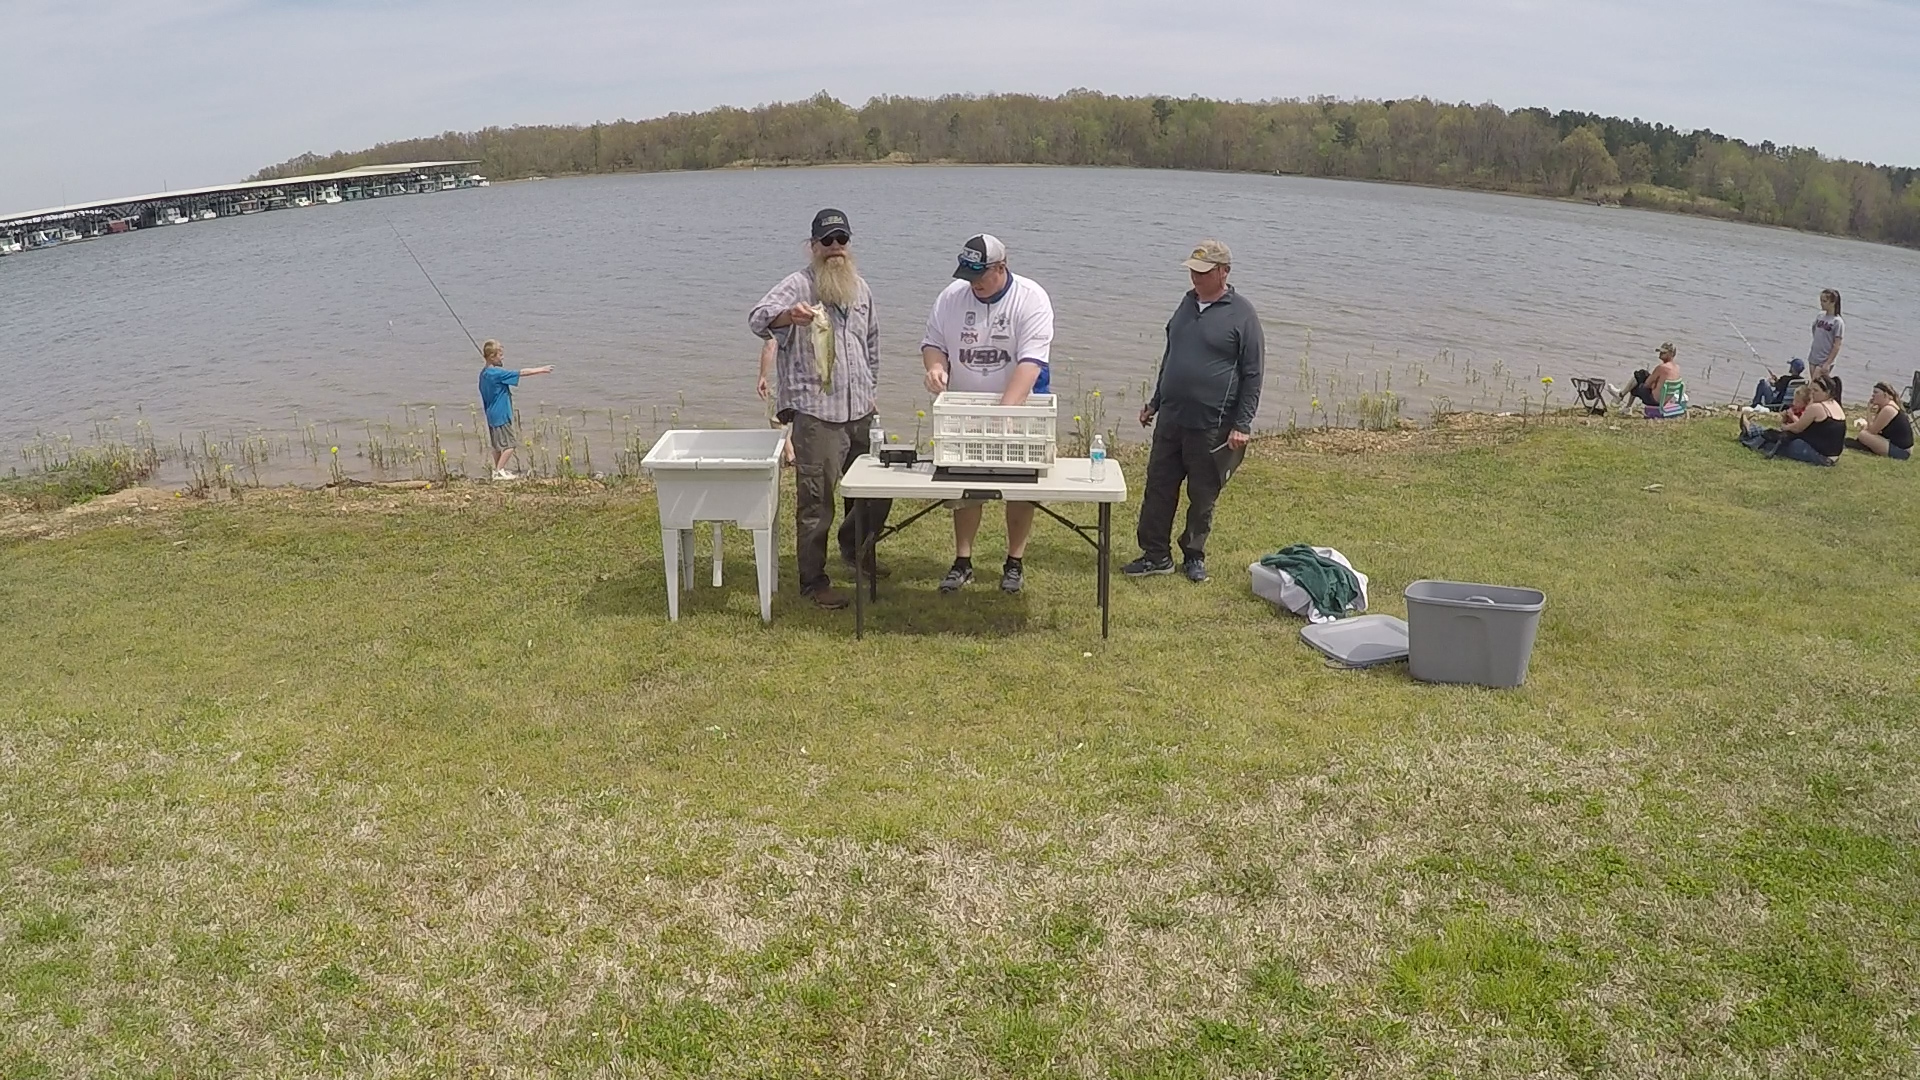 kentucky lake tournament30